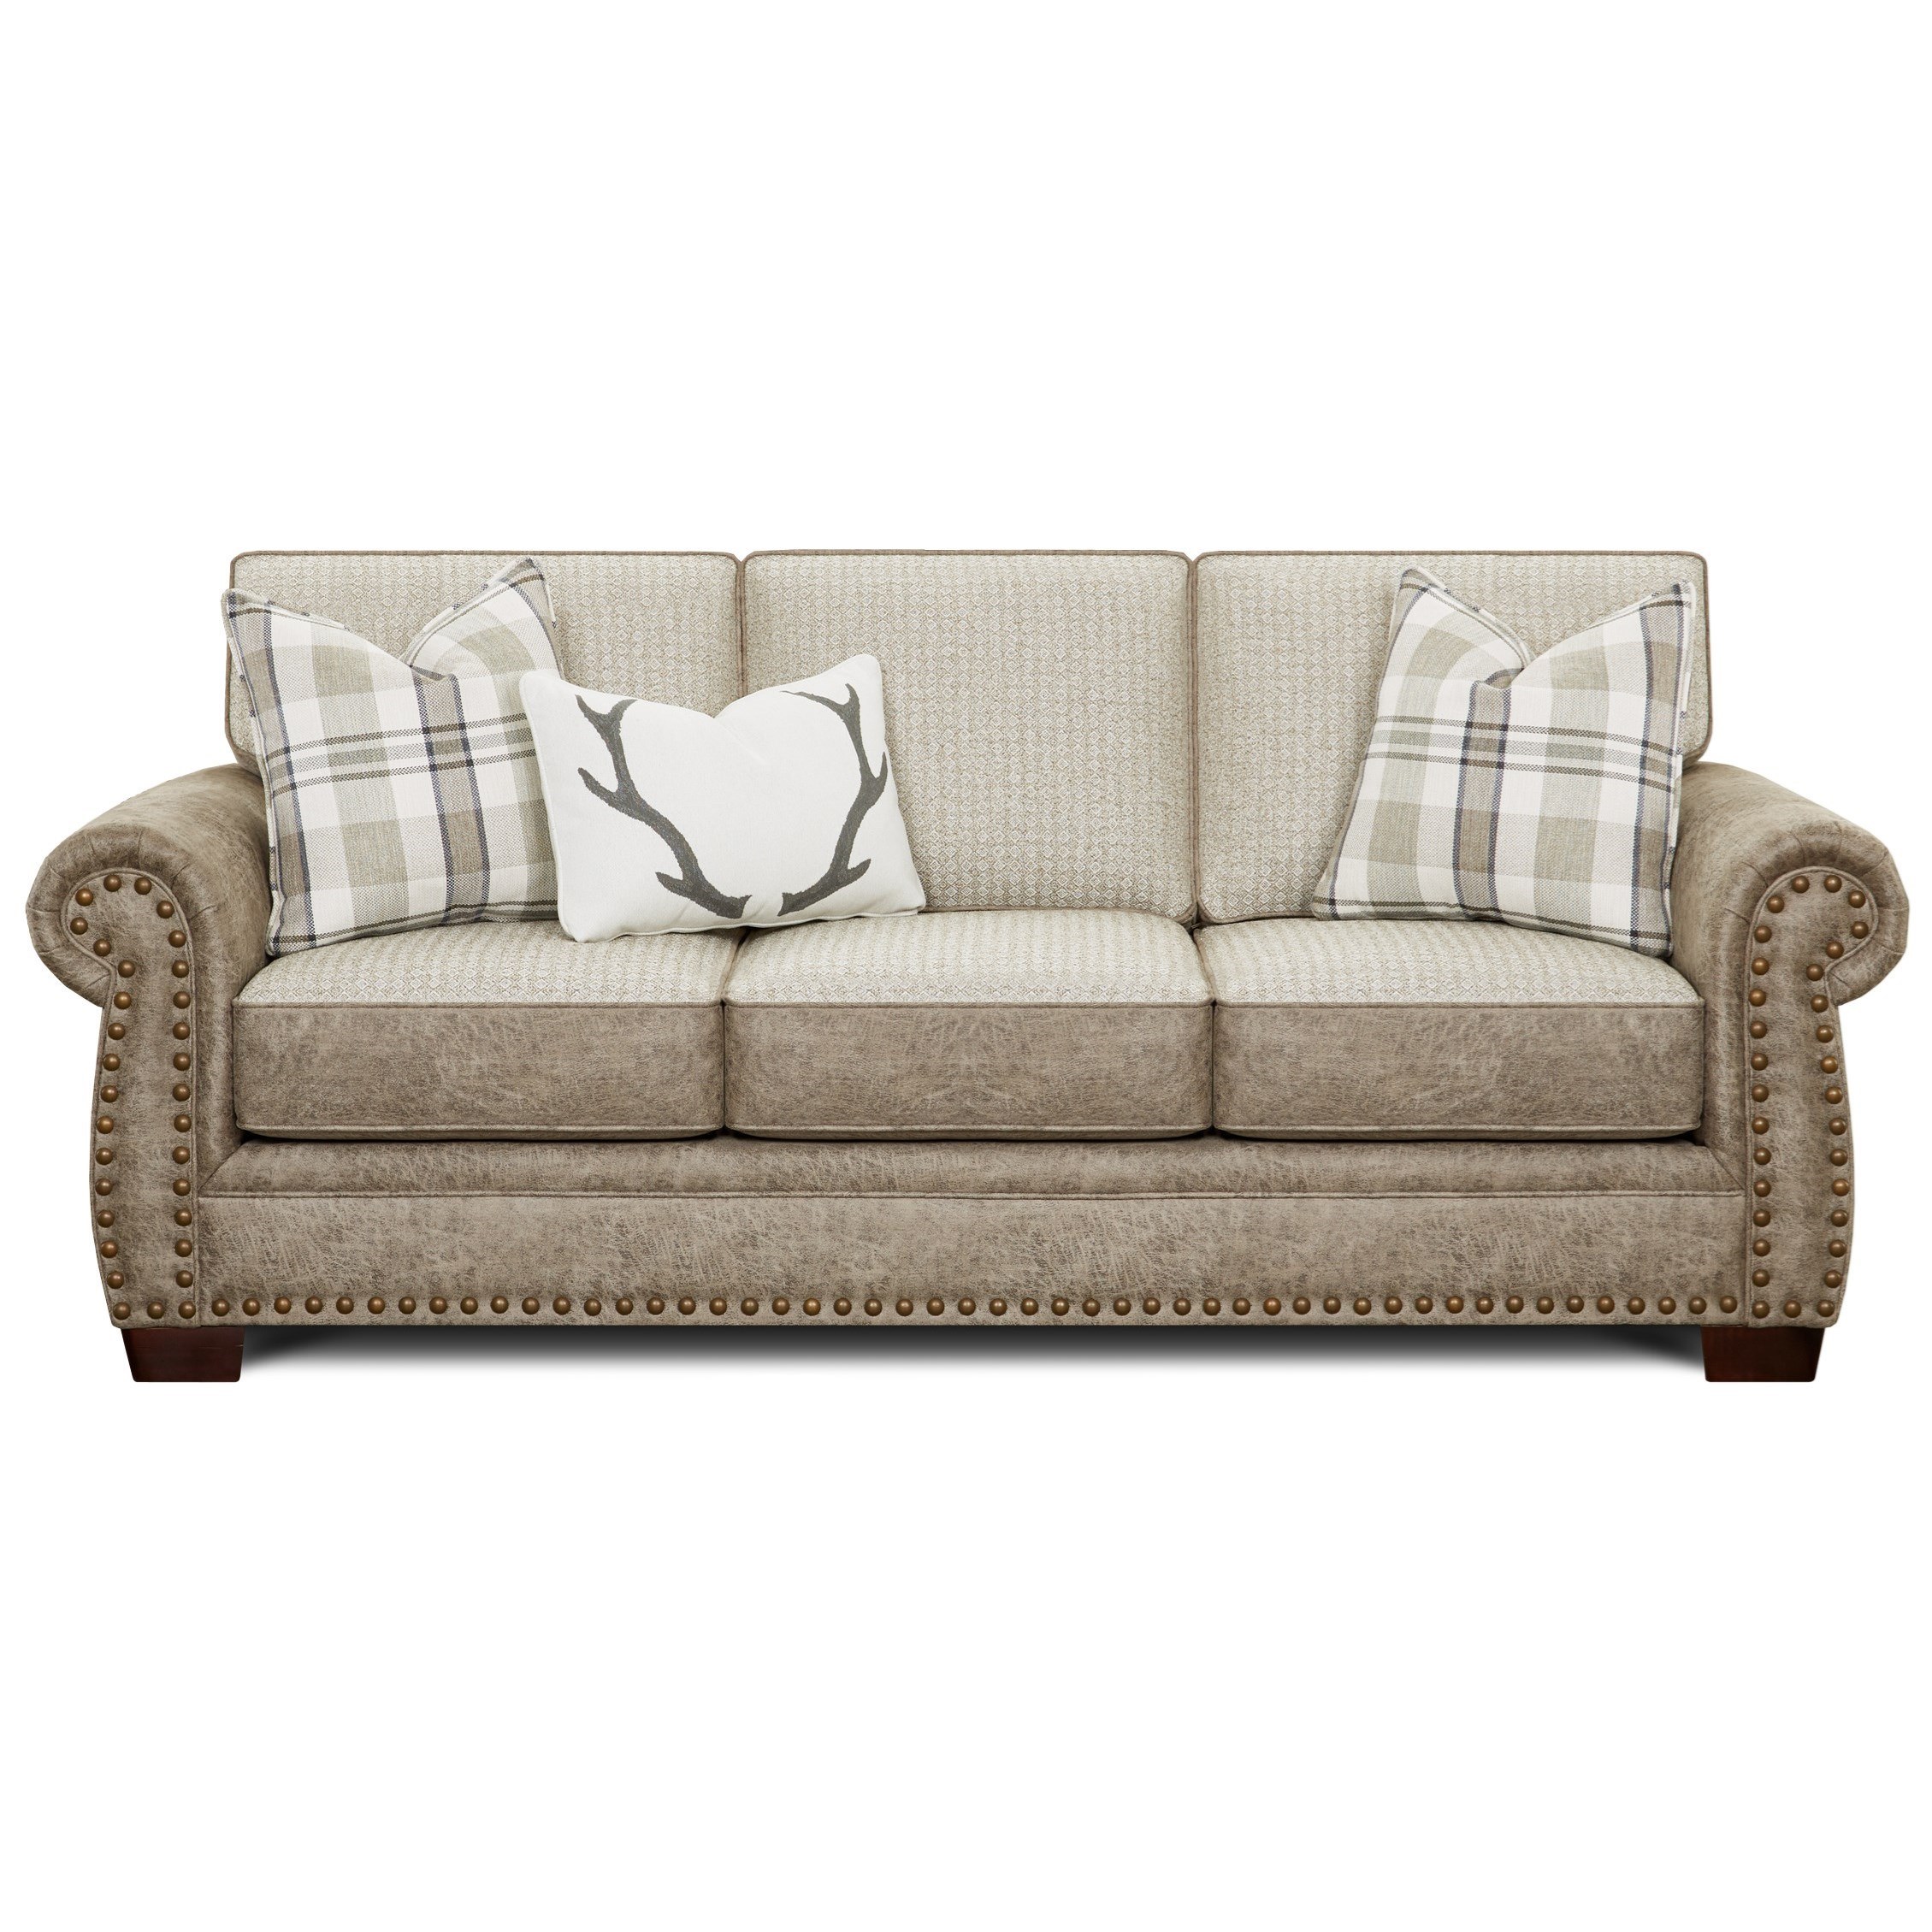 22-00 Sofa by Fusion Furniture at Hudson's Furniture